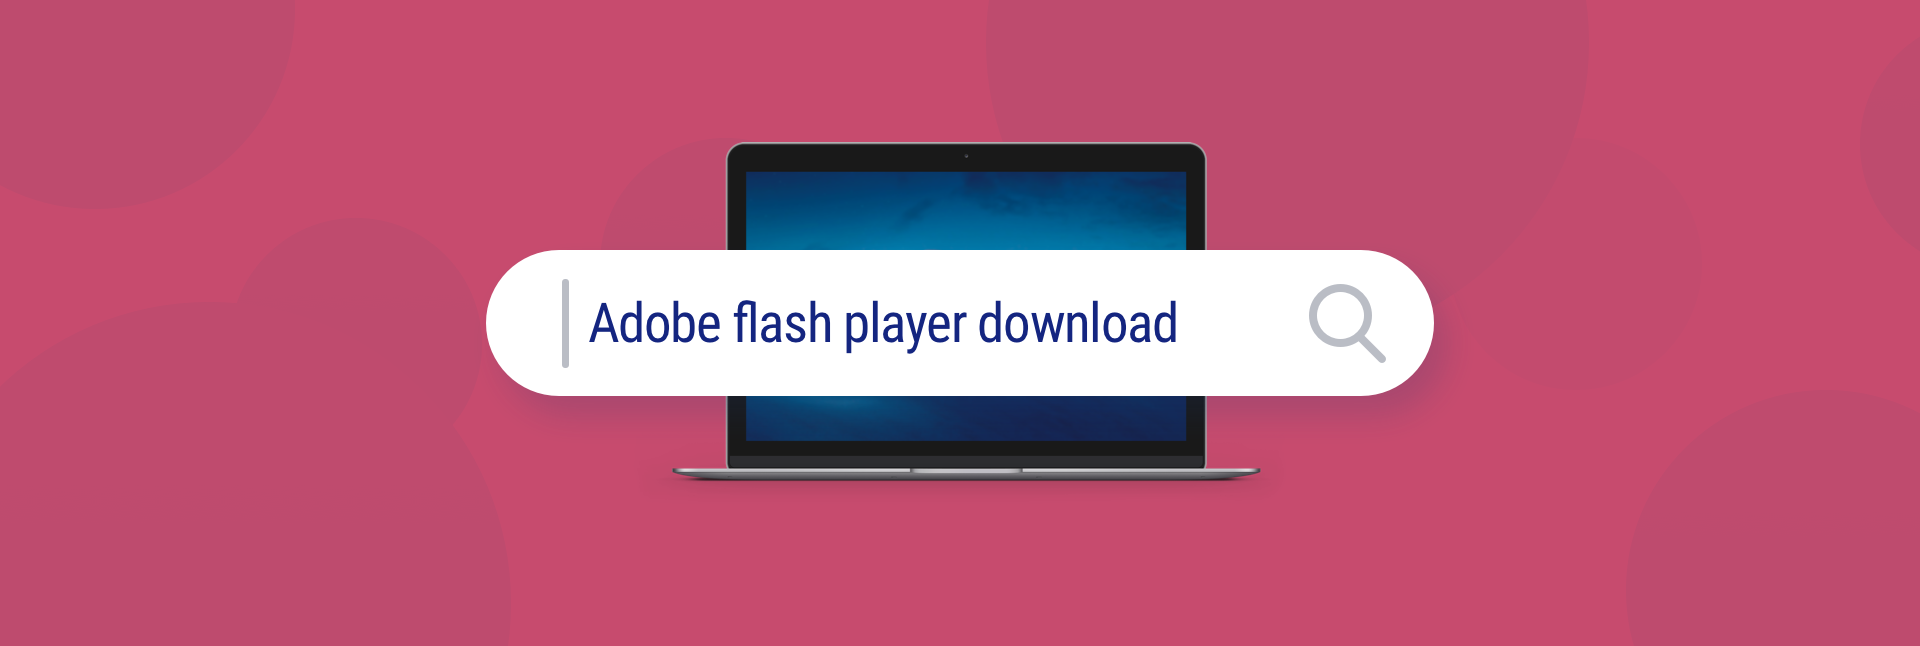 Adobe flash player download free videos watch download